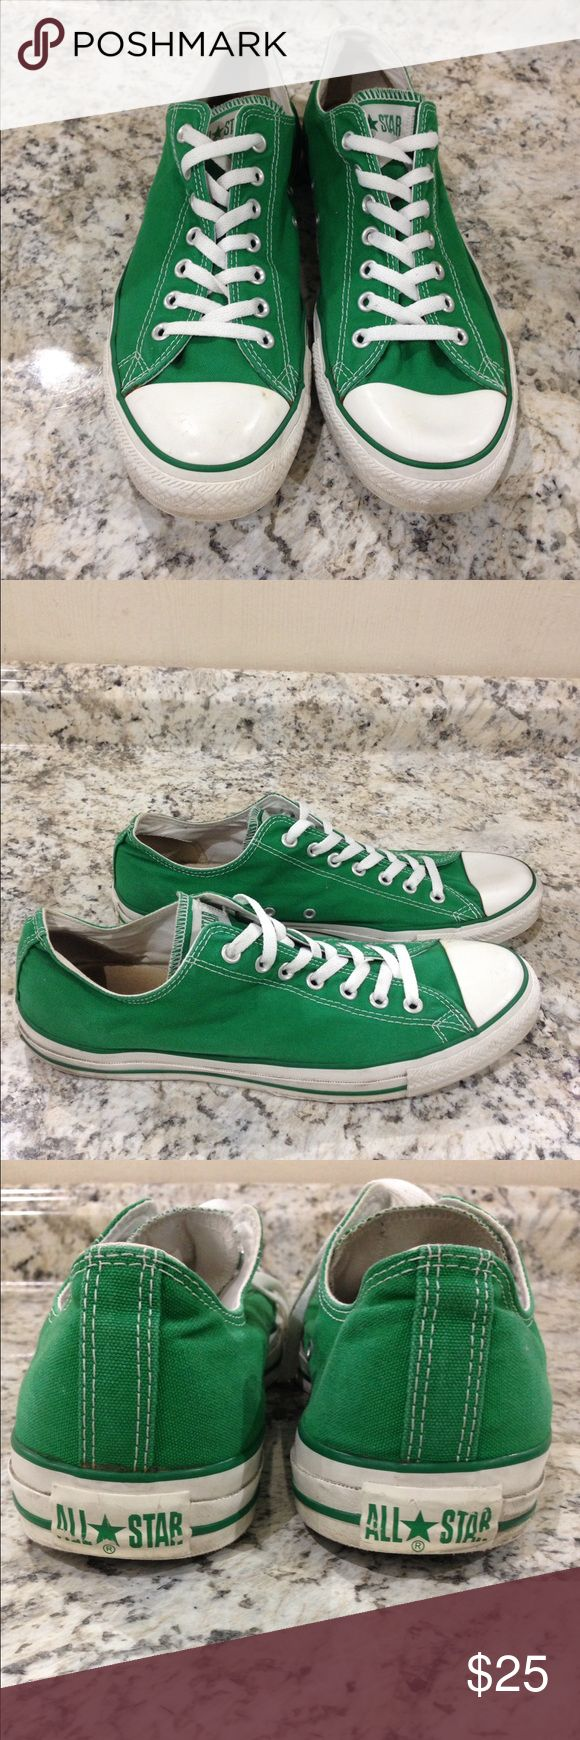 🌴NEW LISTING🌴 Converse Shoes Green. Shows signs of wear. Size 12.  (1/27) Converse Shoes Athletic Shoes